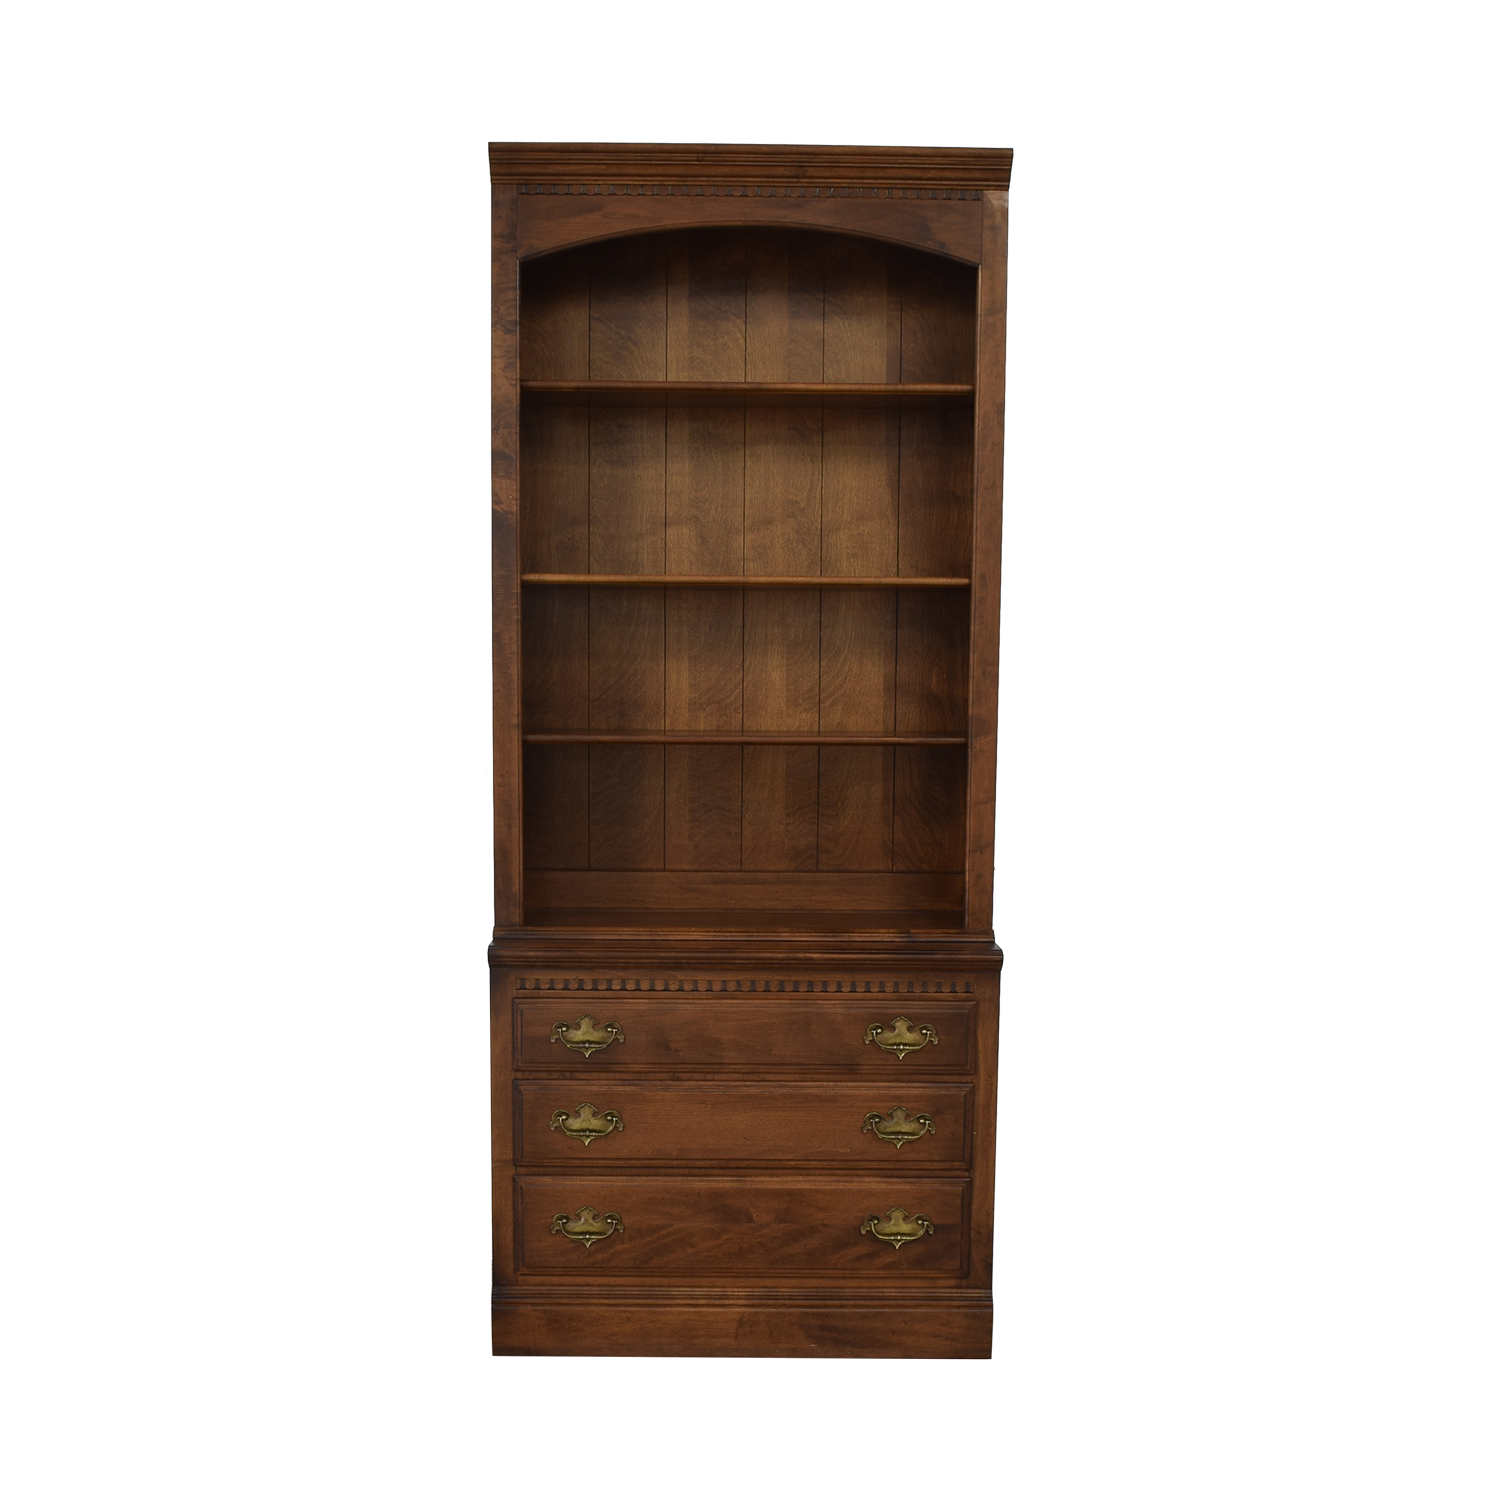 Ethan Allen Ethan Allen Bookcase with Drawers for sale